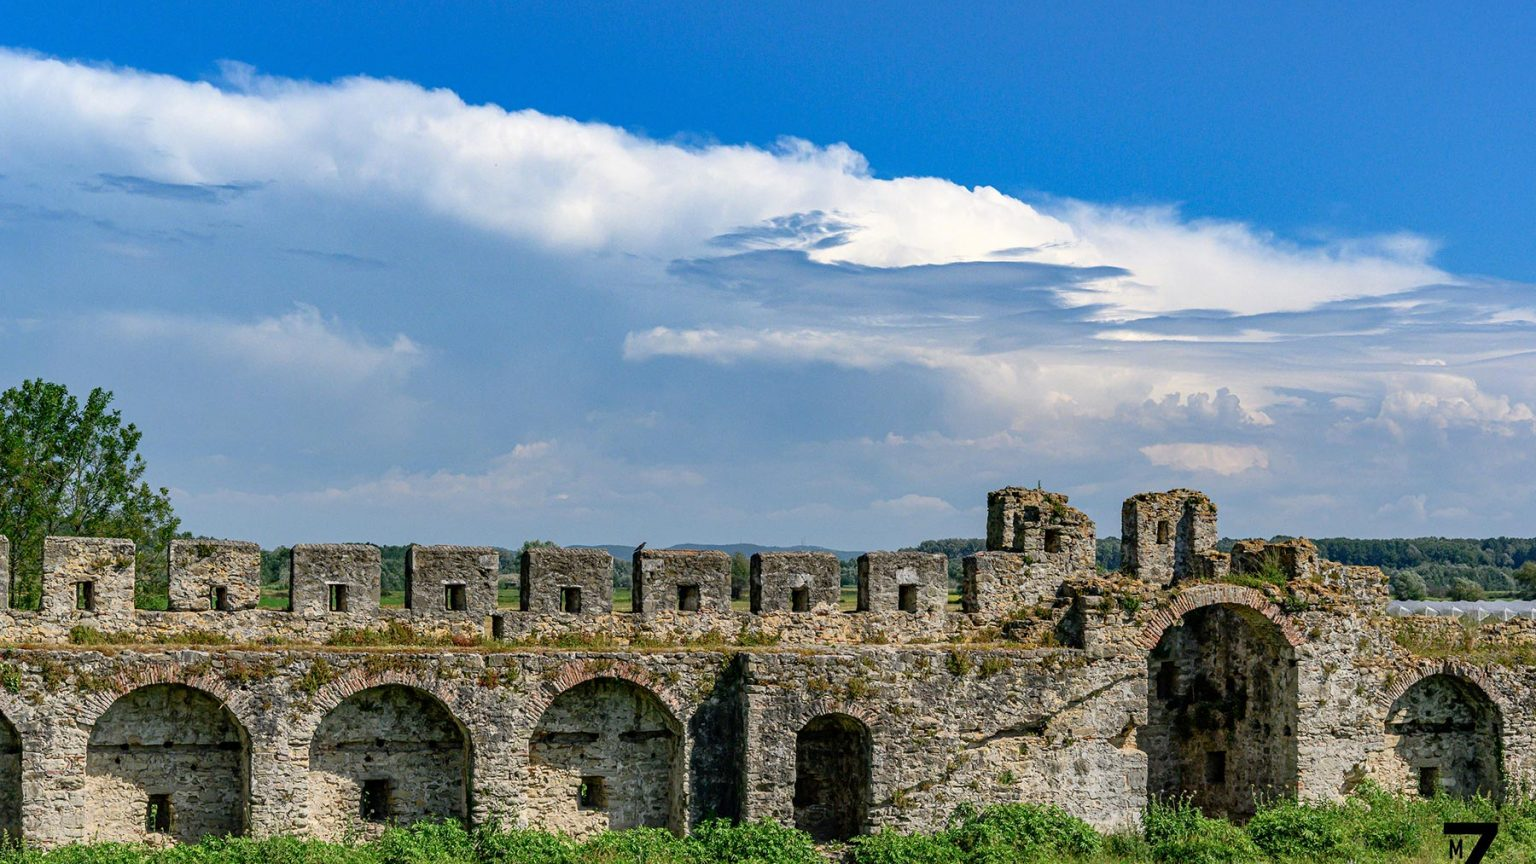 Bashtova Castle, photo courtesy of Matthew J Zumwalt. instagram.com/matthewjzumwalt